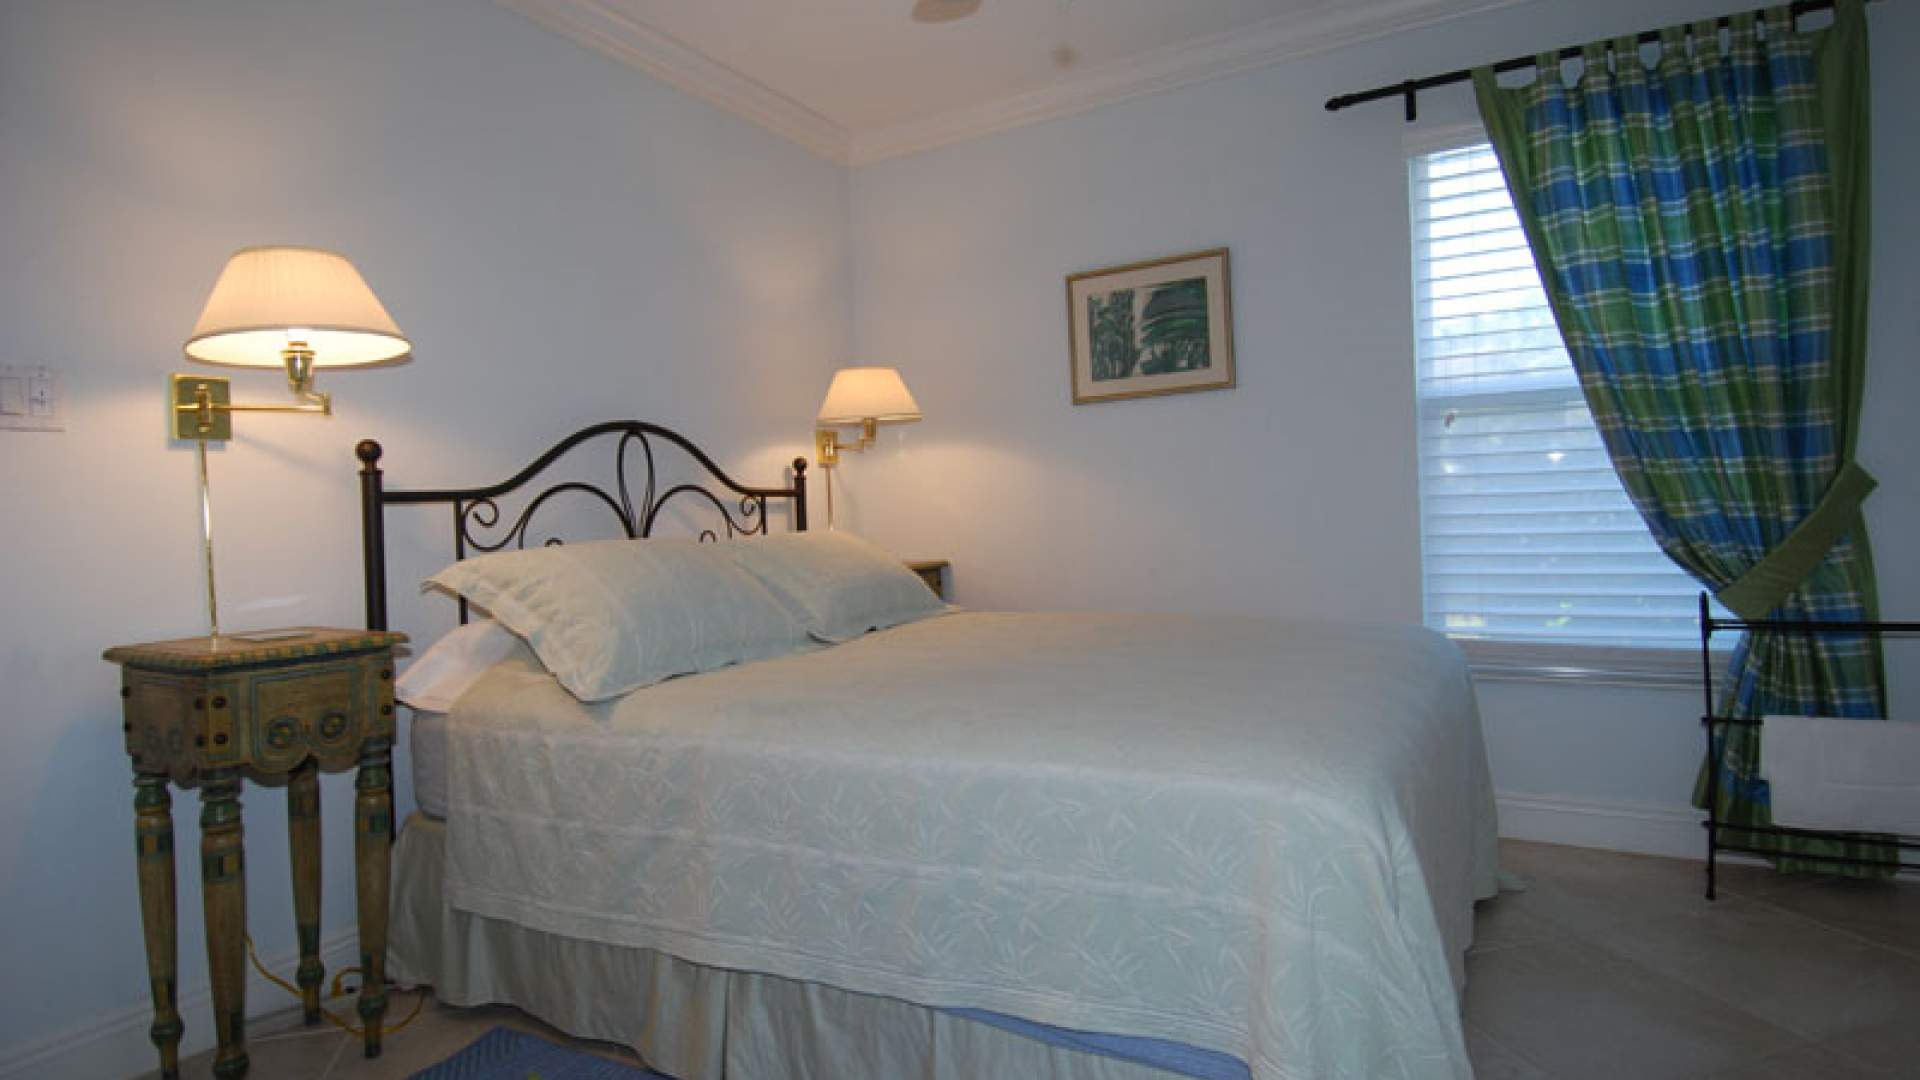 The inviting third bedroom offers a Queen size bed